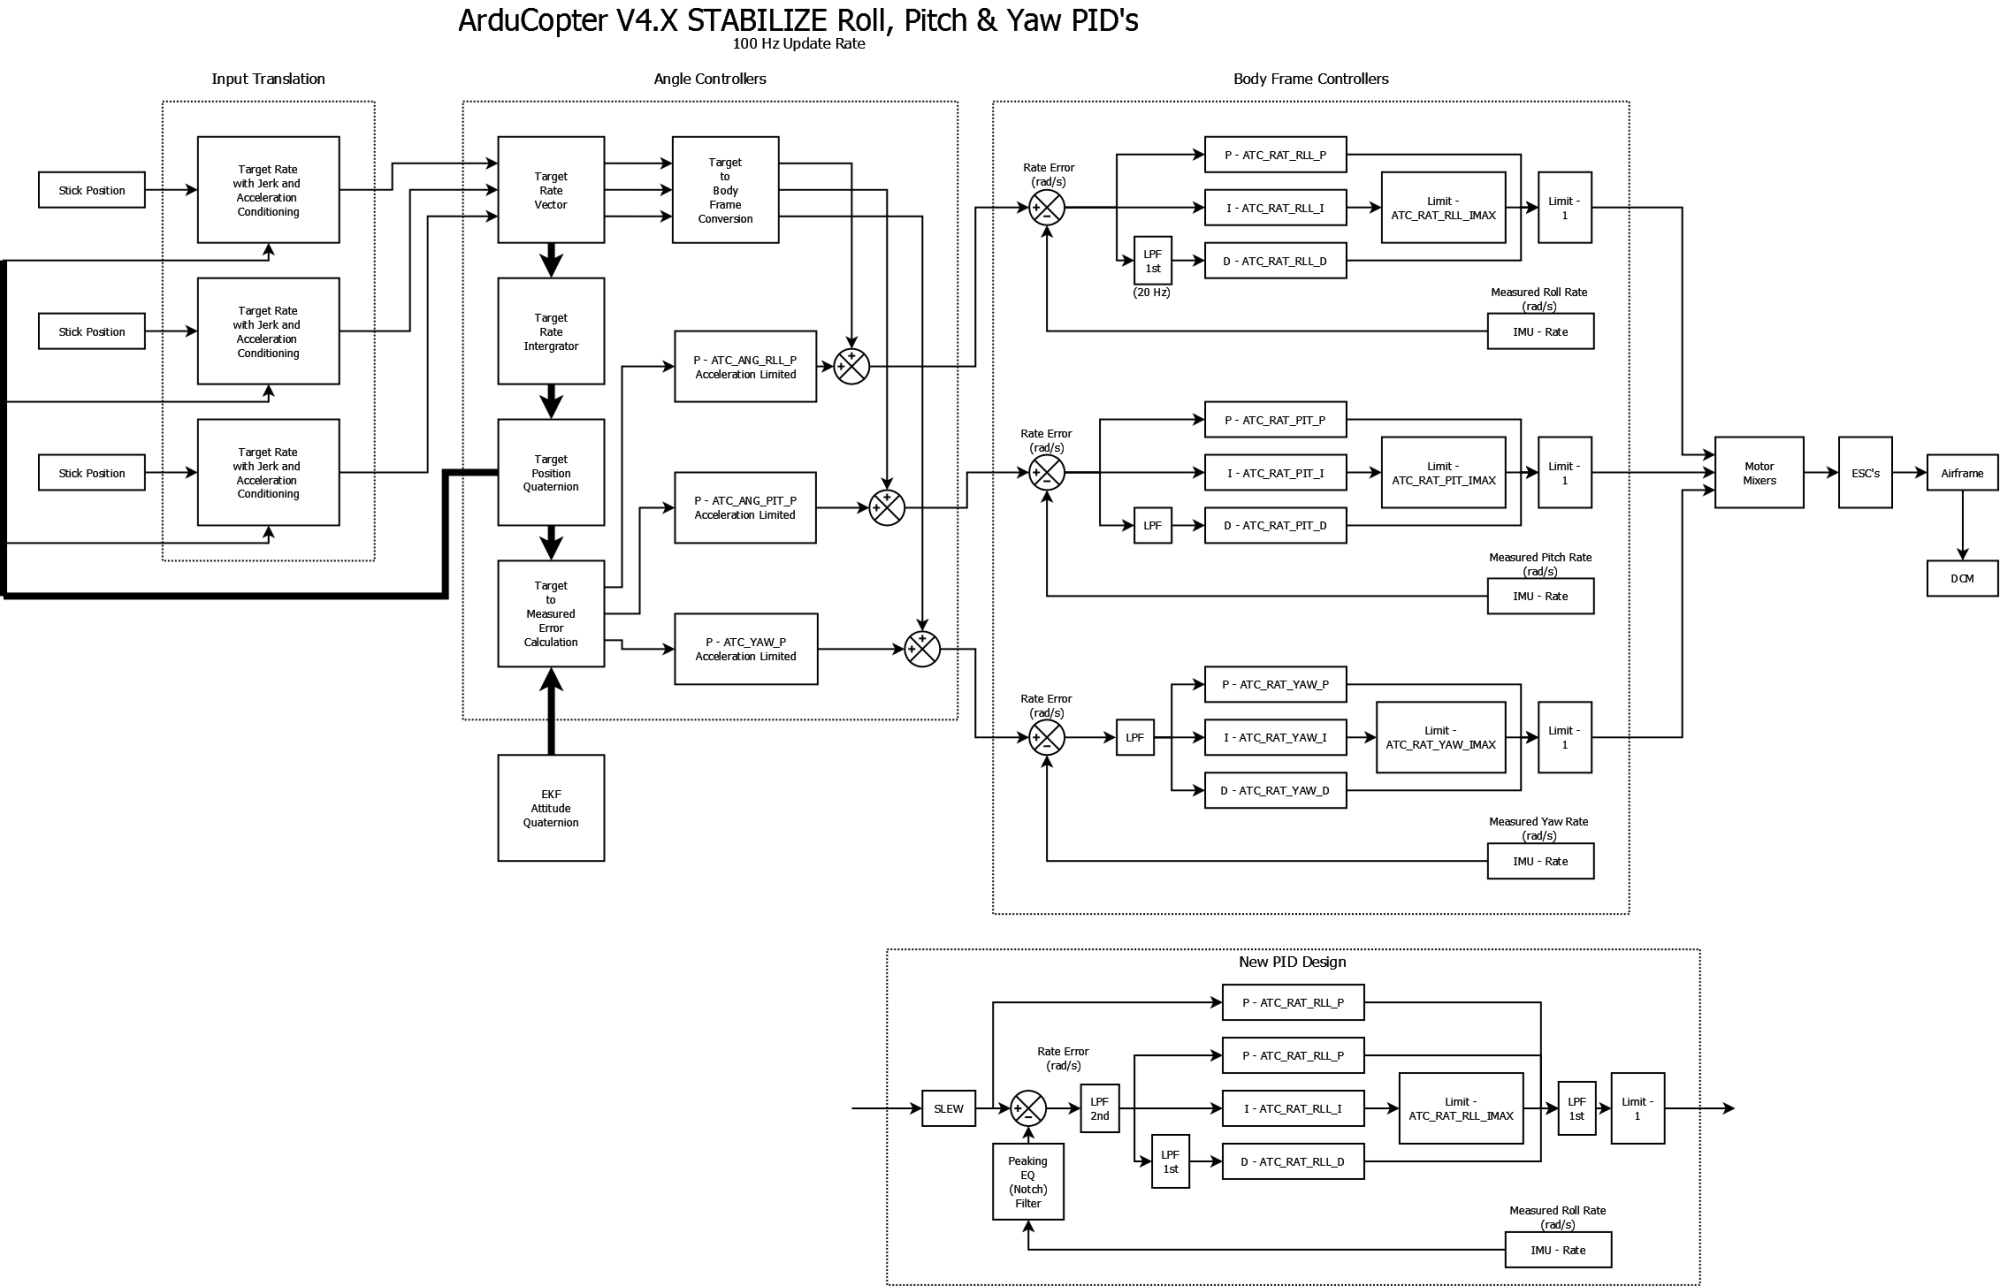 hight resolution of p id logic diagram wiring libraryarducopter v4 attitude pids png2262x1455 178 kb